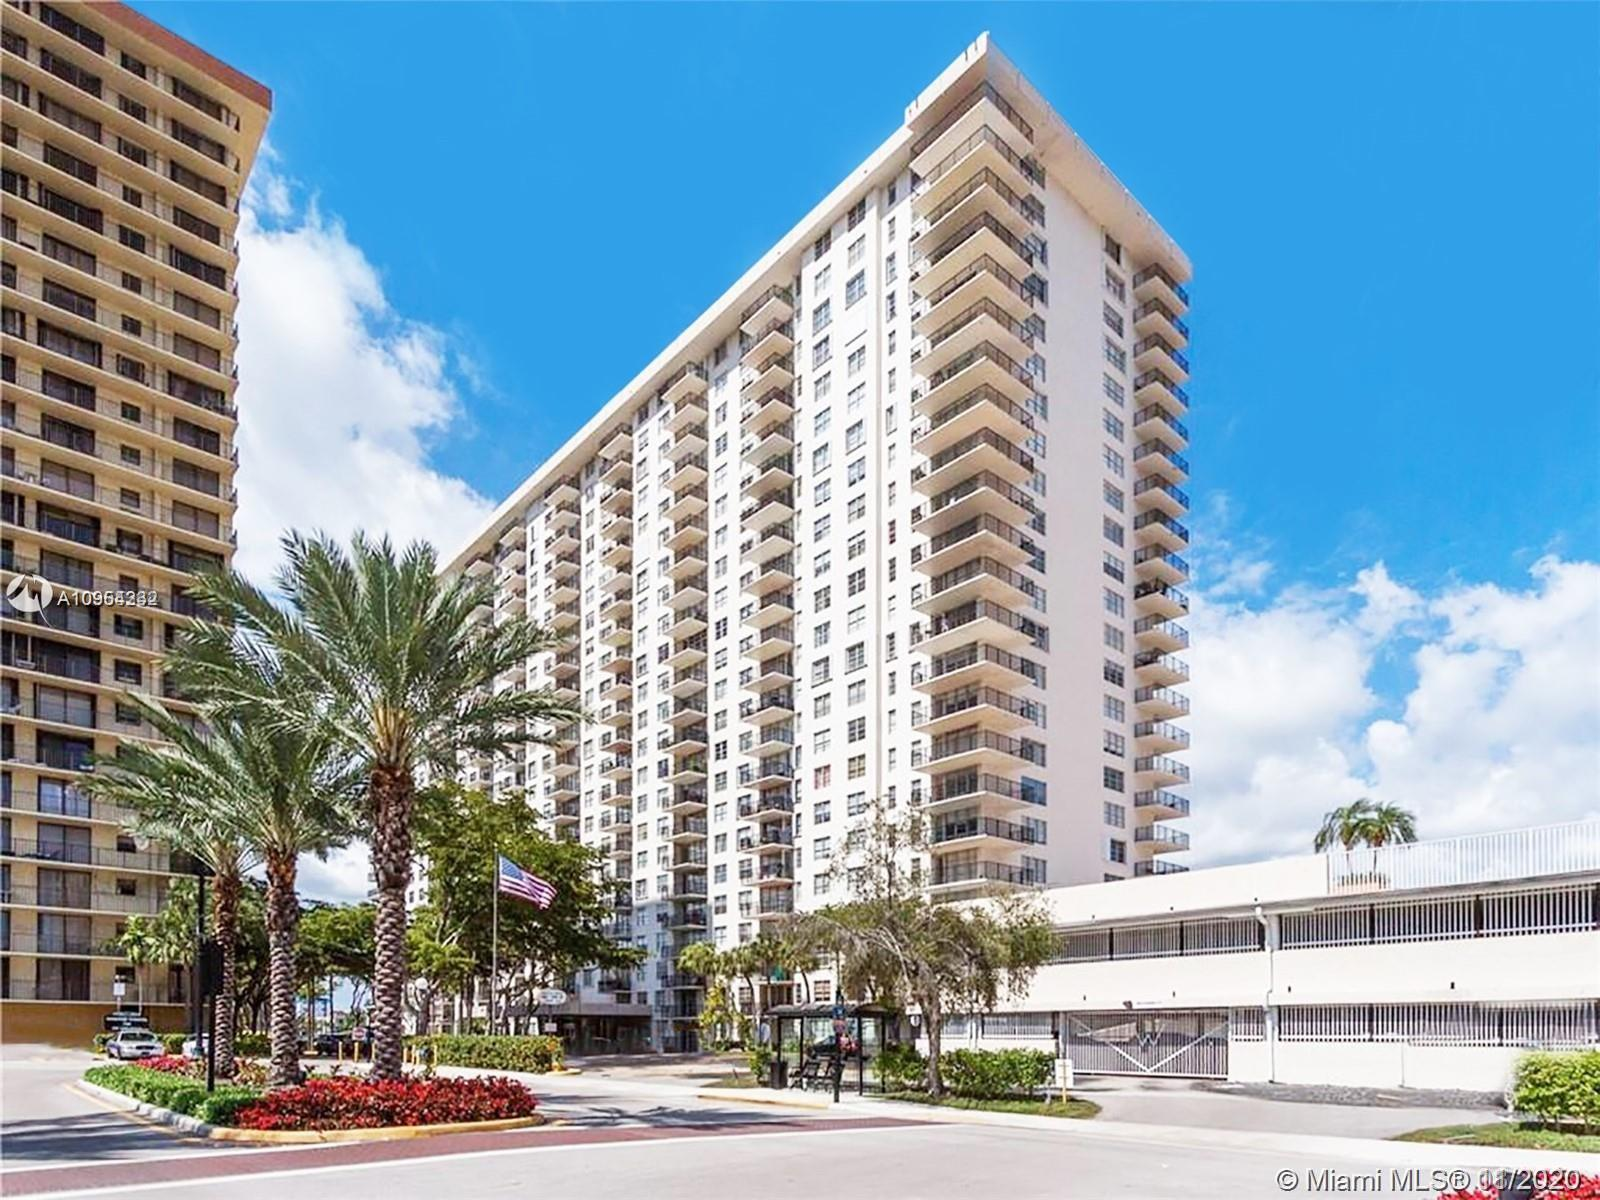 AMAZING  WATER VIEW, READY TO MOVE, GREAT LOCATION,HEART SUNNY ISLES BCH, NICE UNIT, VERY SECURE BUI